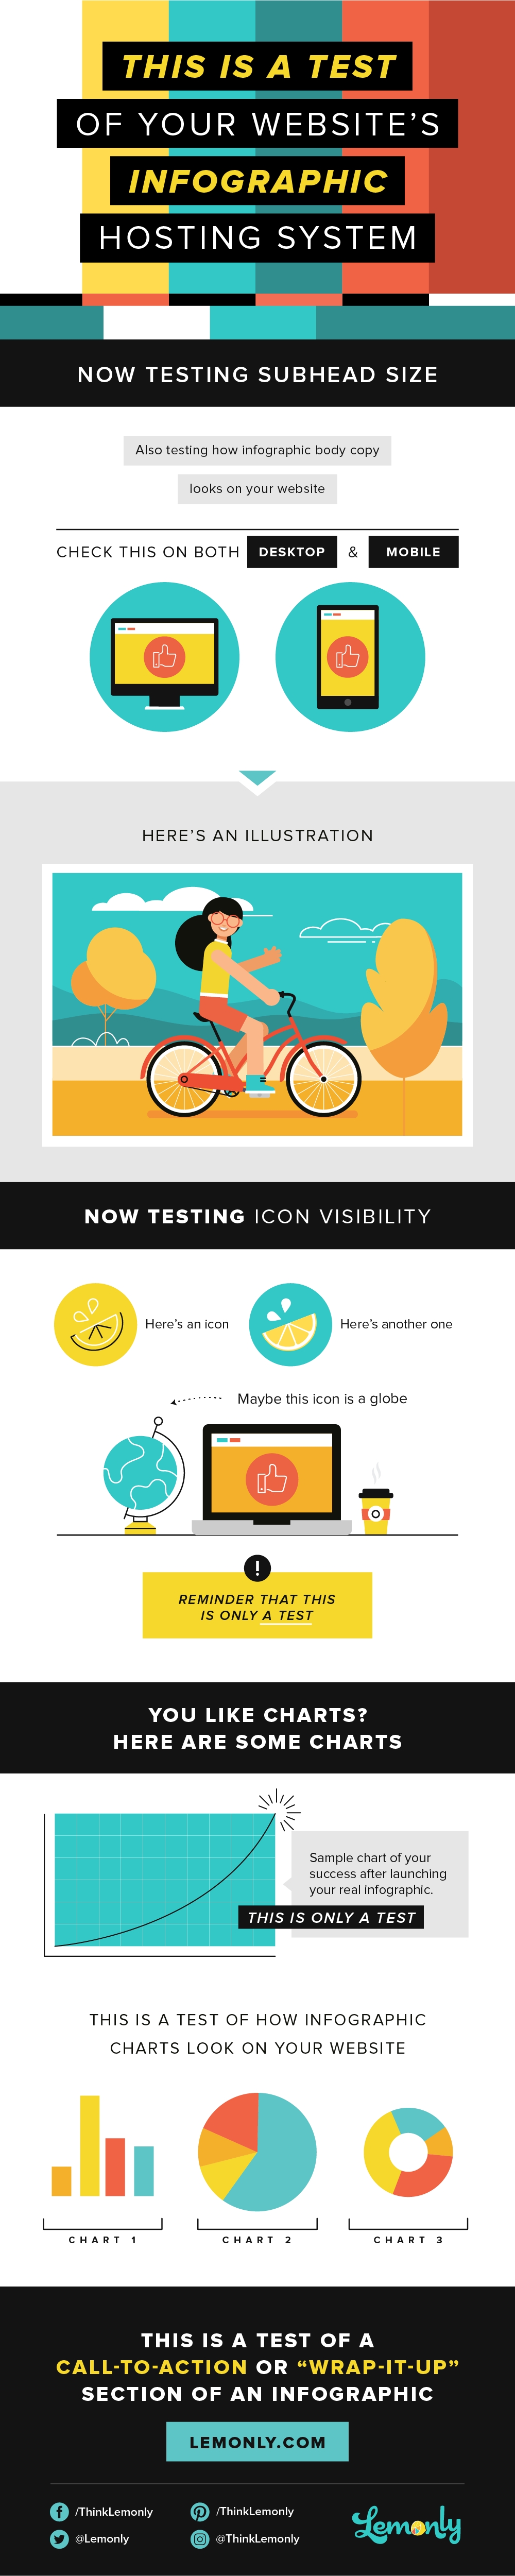 This Is A Test Infographic